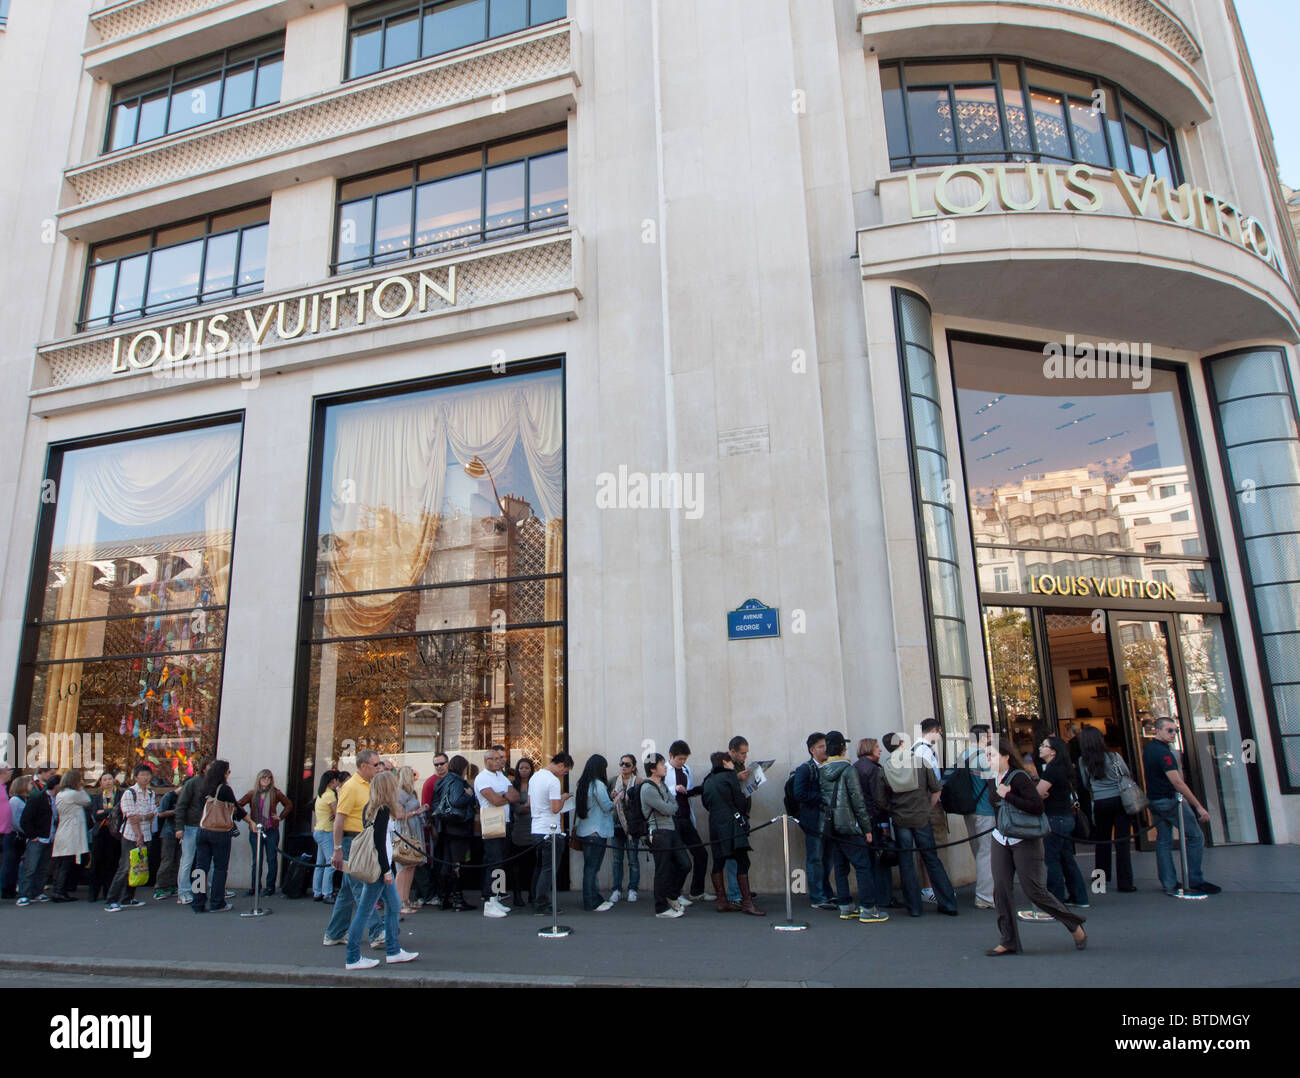 Queue of shoppers outside Louis Vuitton store on Champs Elysees in Paris France - Stock Image